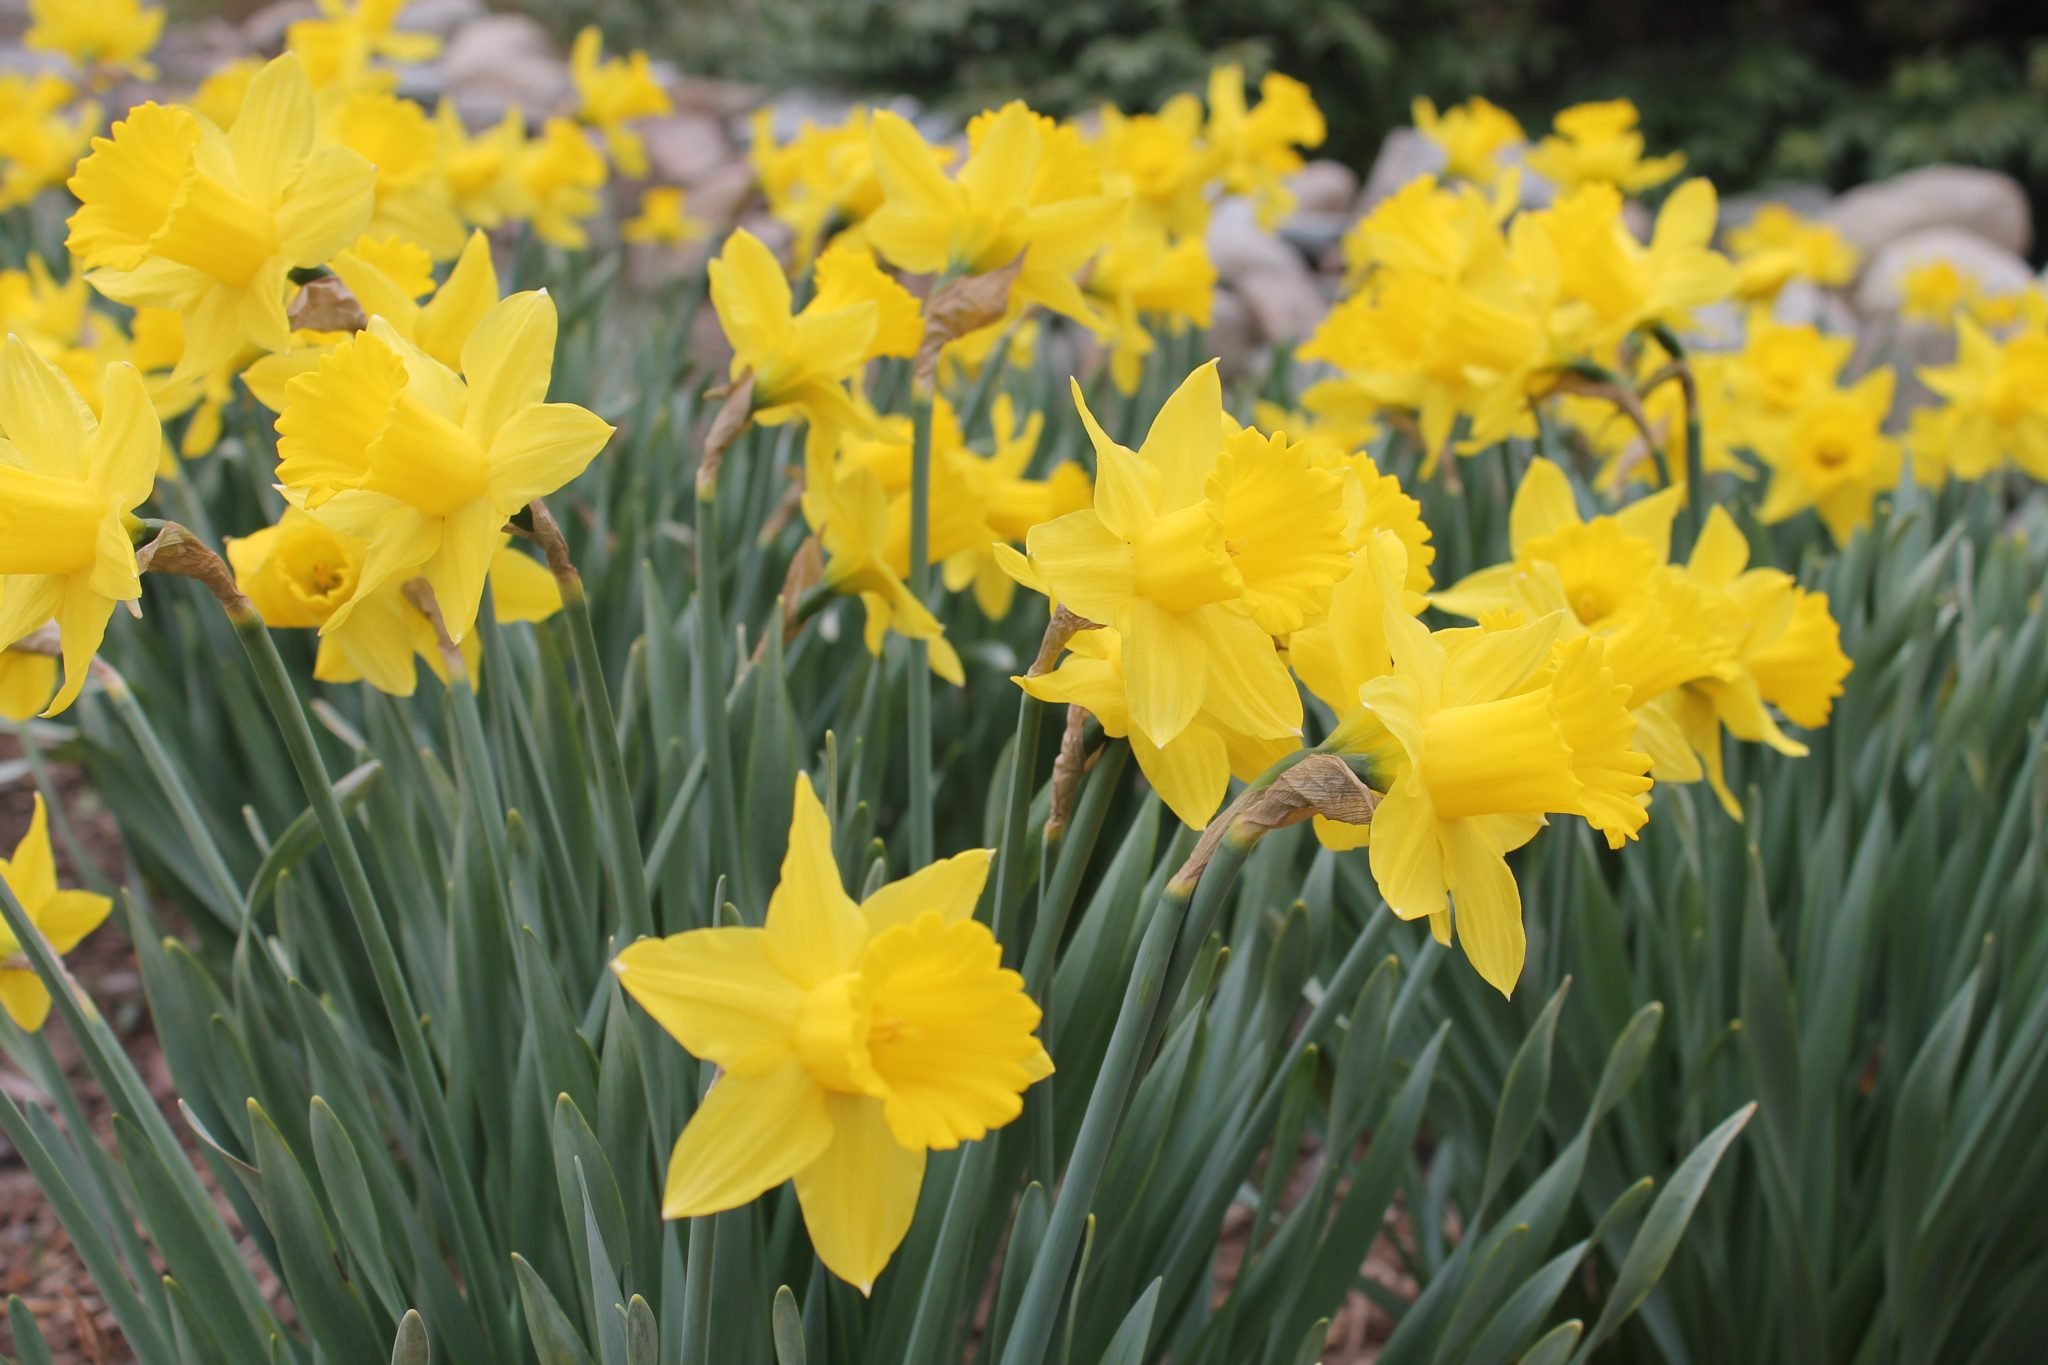 Daffodils at Heritage Museums and Gardens in Sandwich